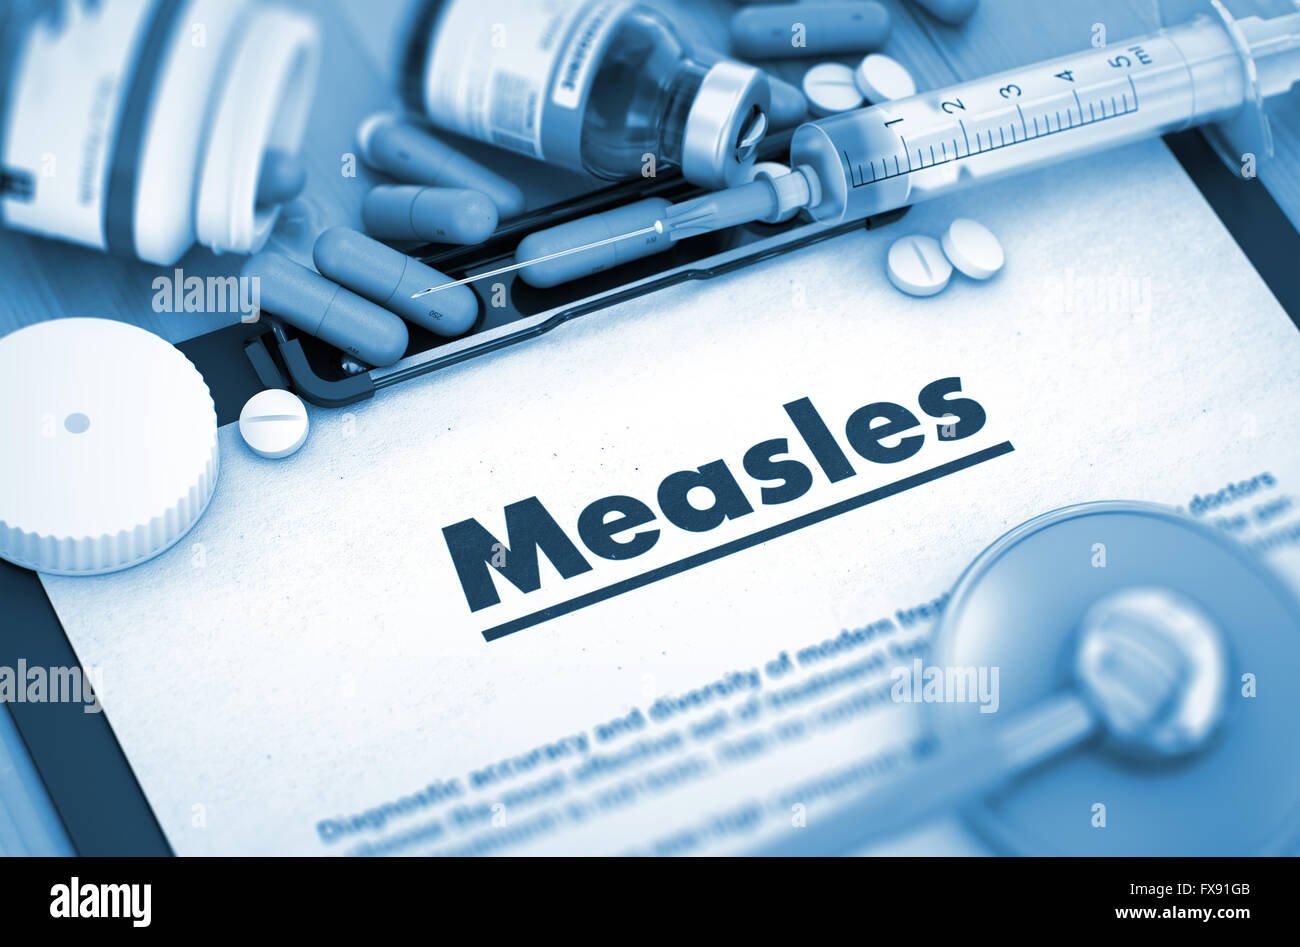 Measles. Medical Concept. - Stock Image